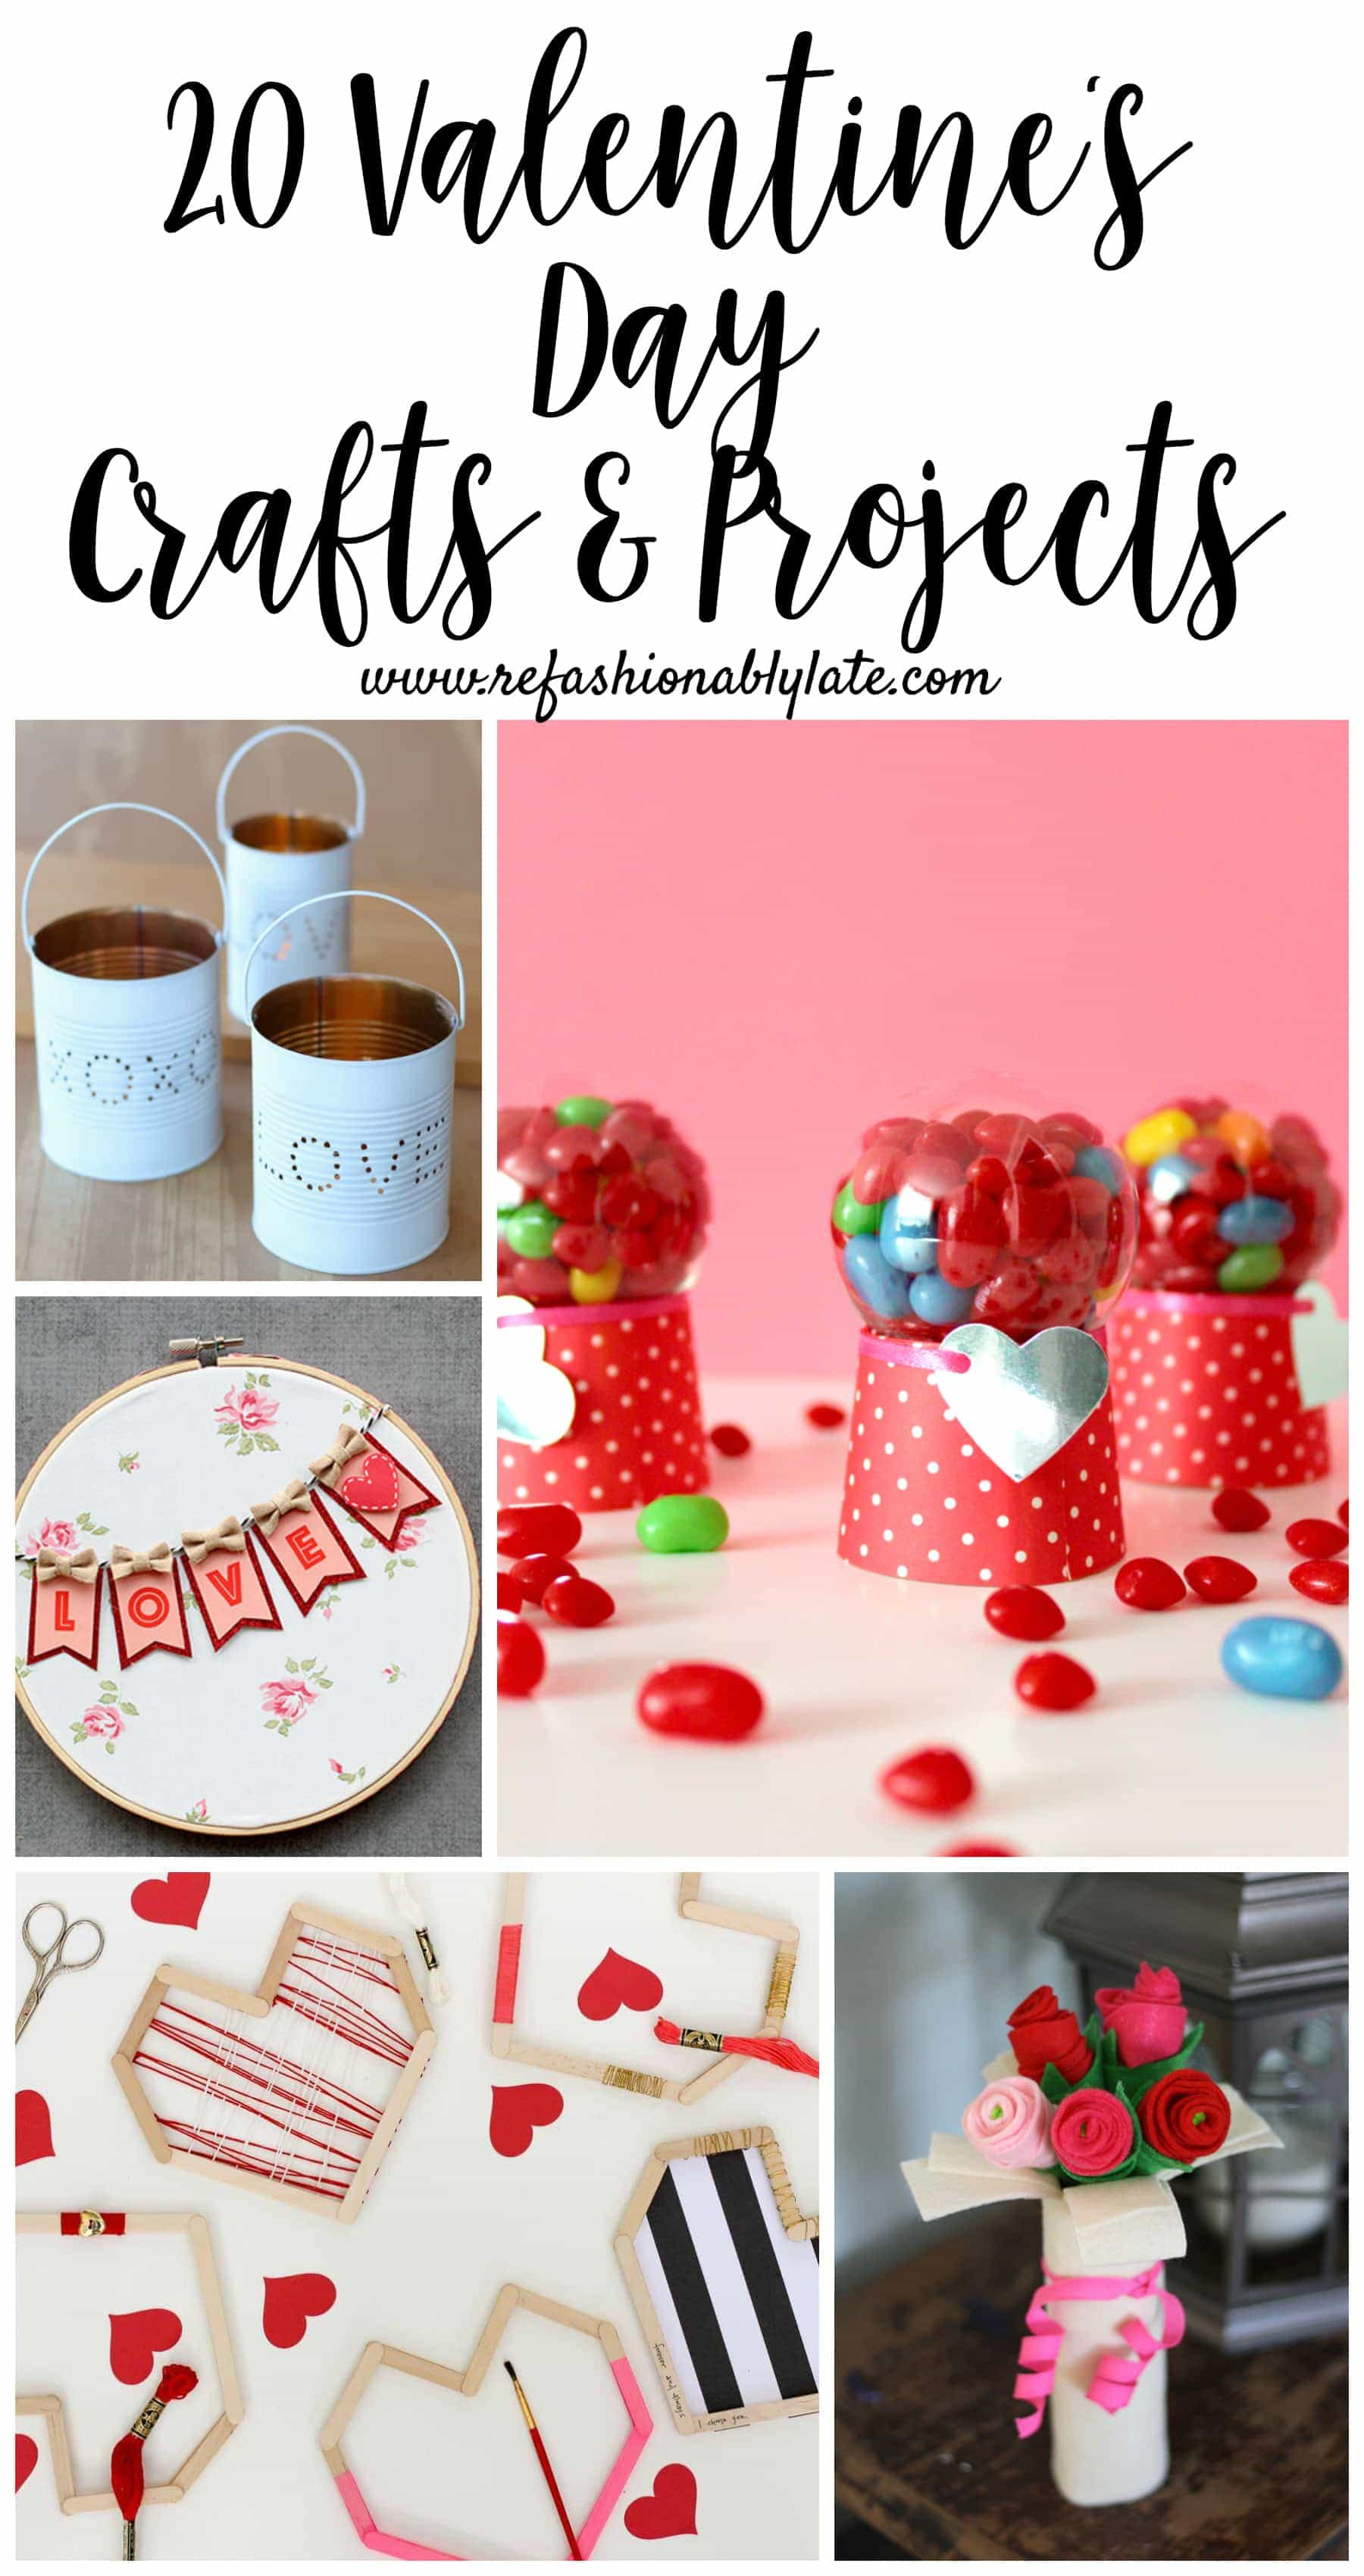 20 Valentine S Day Crafts Projects Refashionably Late